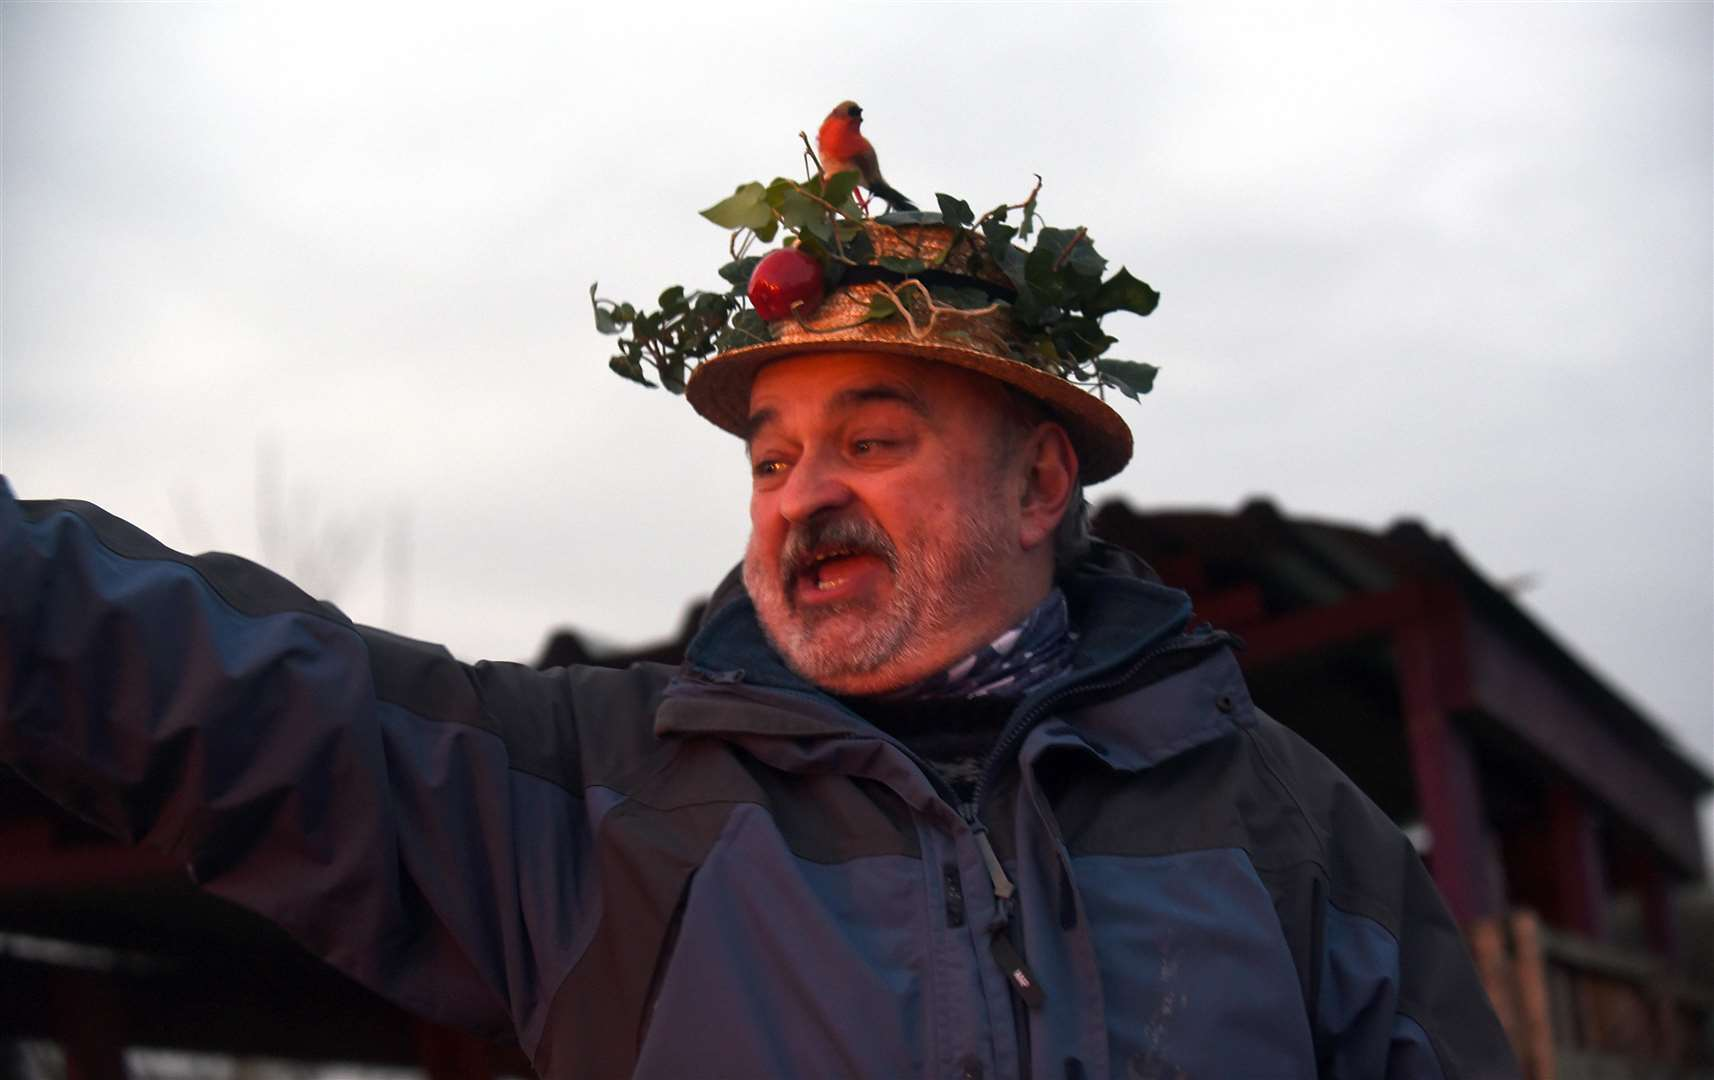 Adrian Tebbutt, the master of ceremonies for Swaffham's Wassail